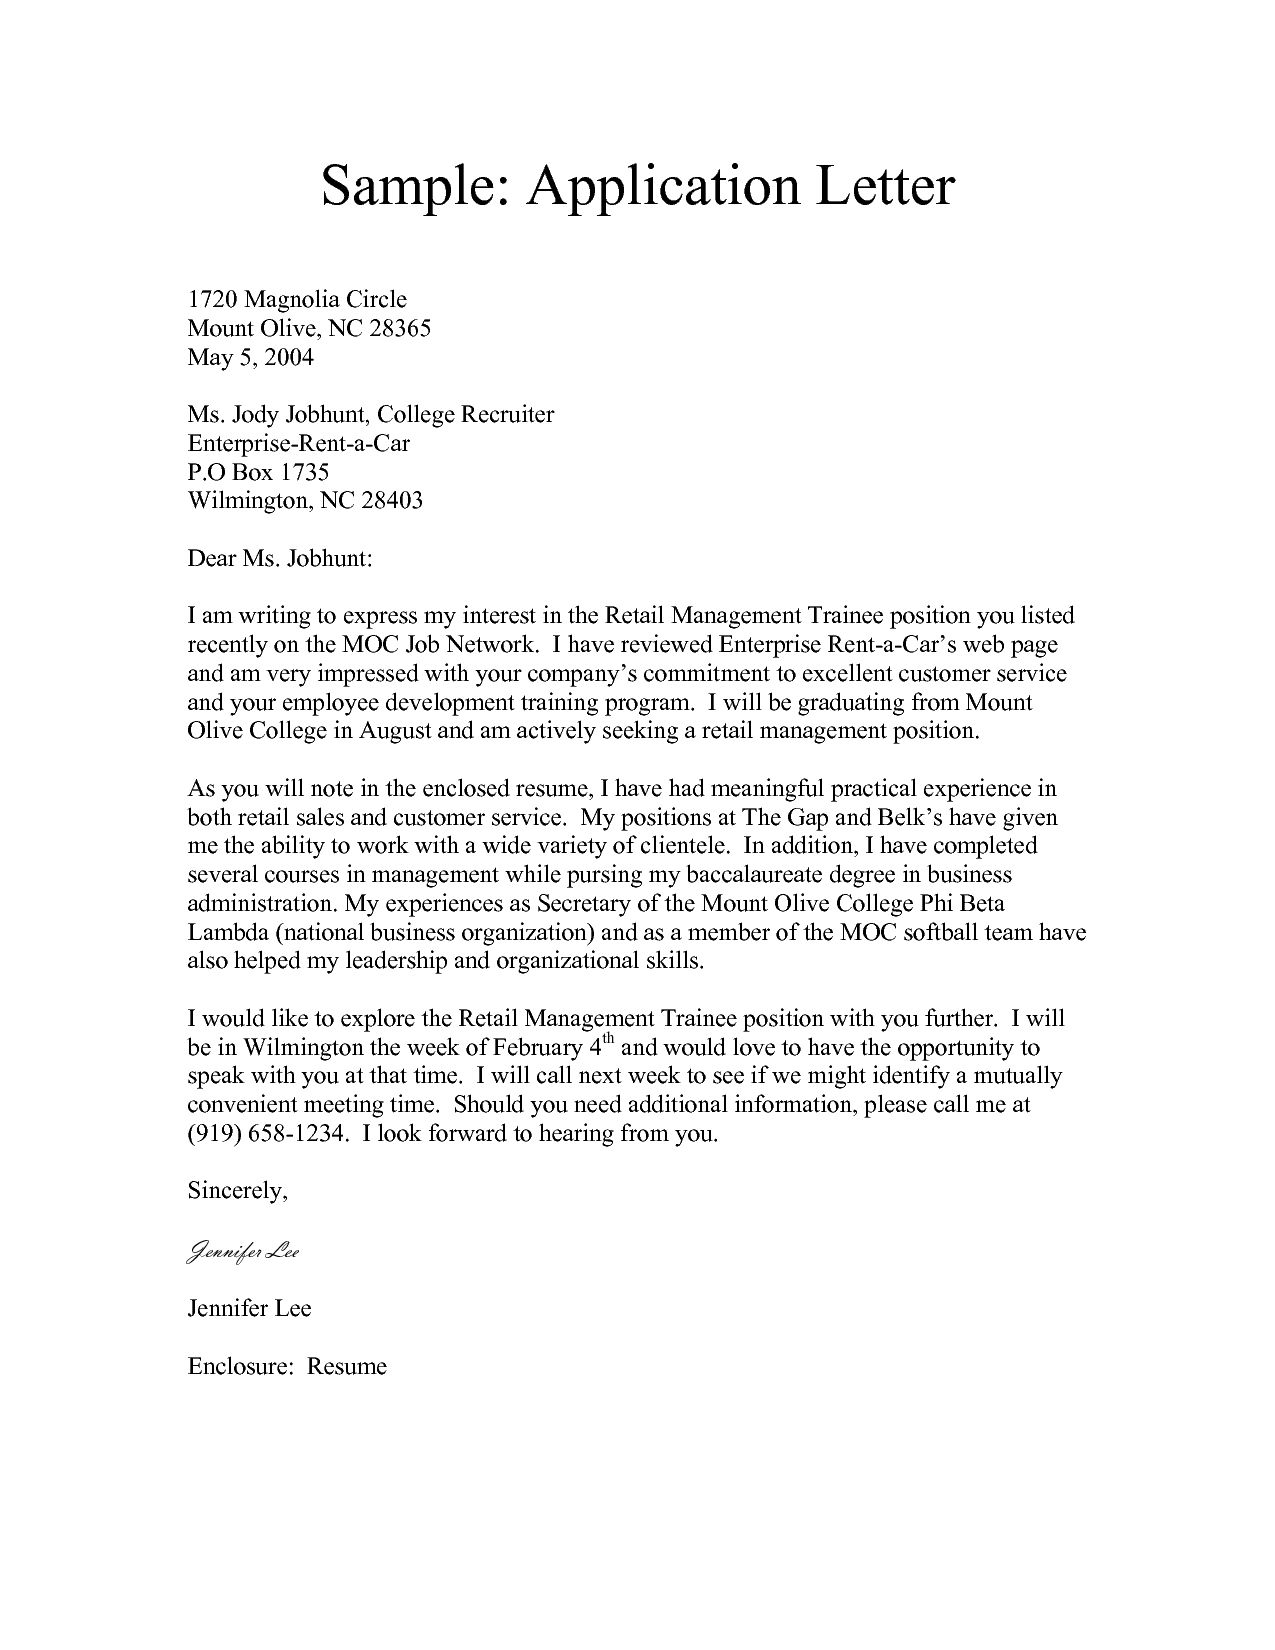 e77396b6bdb08432ca0929f1e16a7e1b - Parts Of Application Letter Format